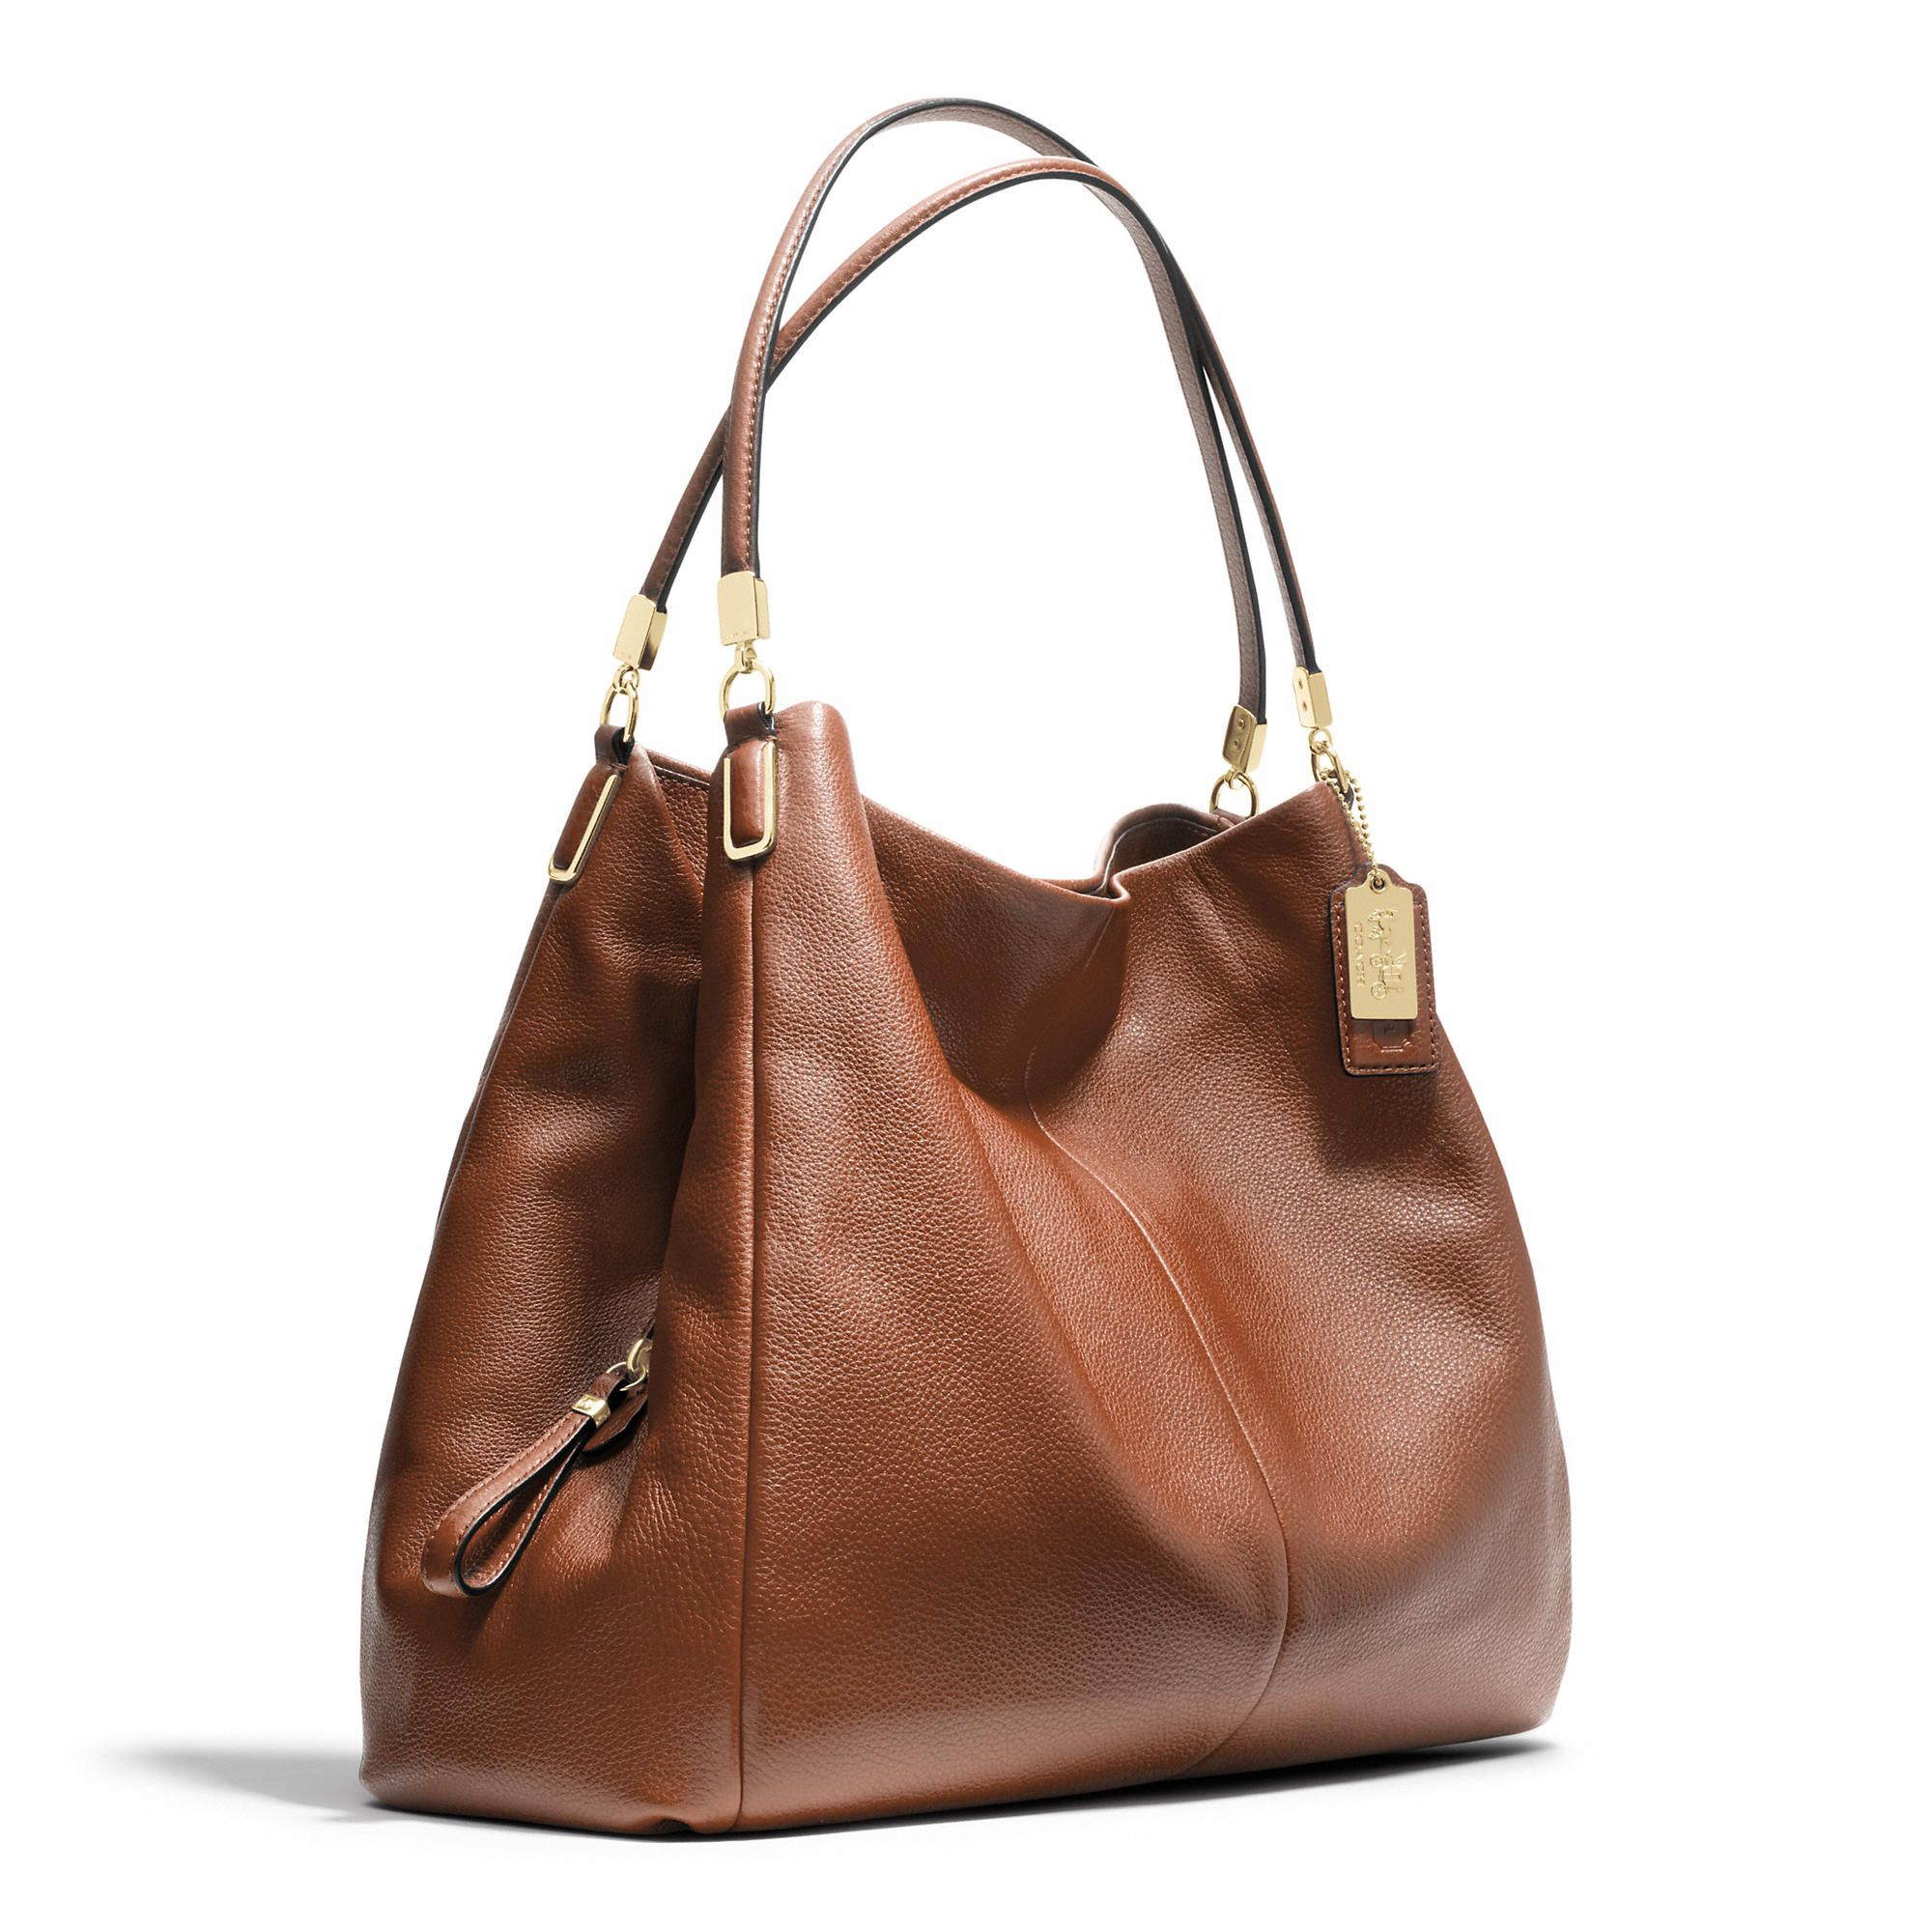 Coach Madison Phoebe Shoulder Bag In Leather This Looks Like It Could Transition From Grad School To New Job